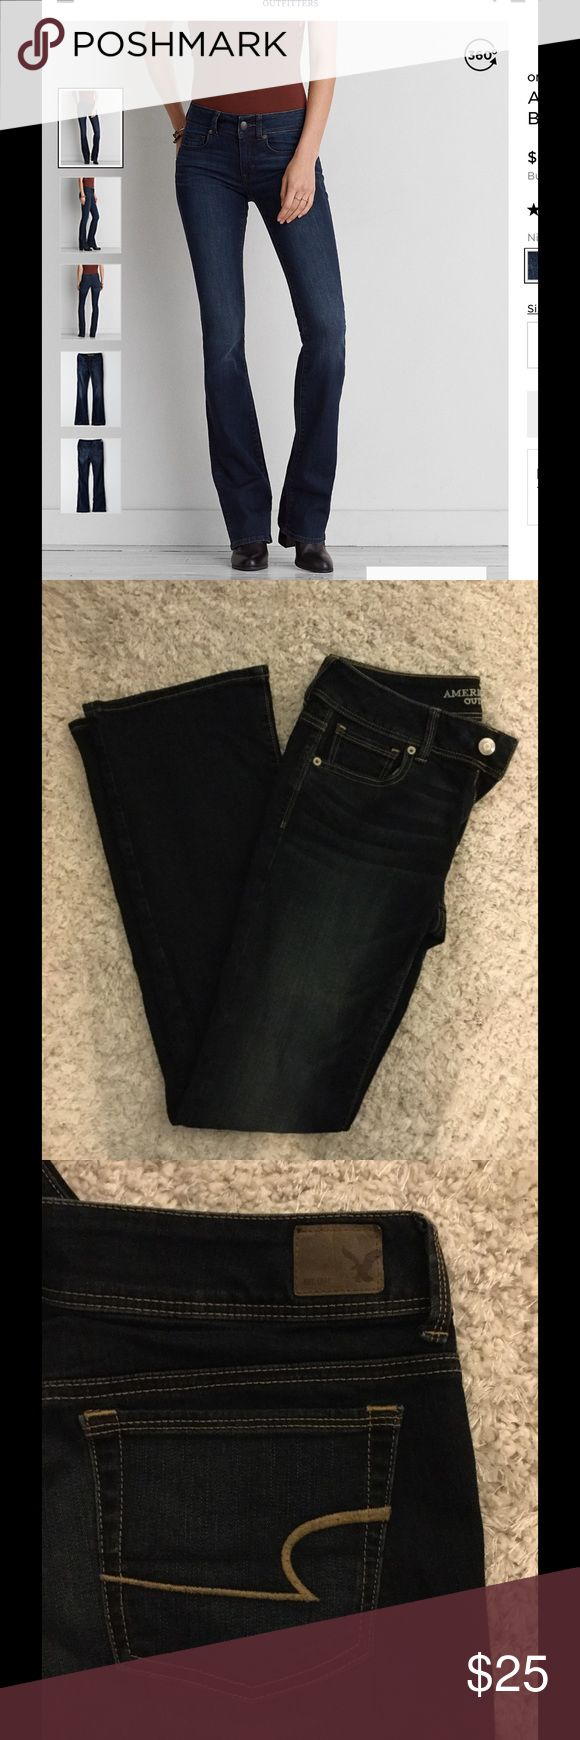 American Eagle Kick Boot Long Jeans American Eagle Outfitters kick boot long jeans. These Jeans are a dark wash and have only been worn once or twice and are in perfect condition. They are long jeans, I am 5'9 and they fit my legs great. I would be happy to give a discount to bundle these with the other pair I have listed, just let me know if interested. American Eagle Outfitters Jeans Boot Cut